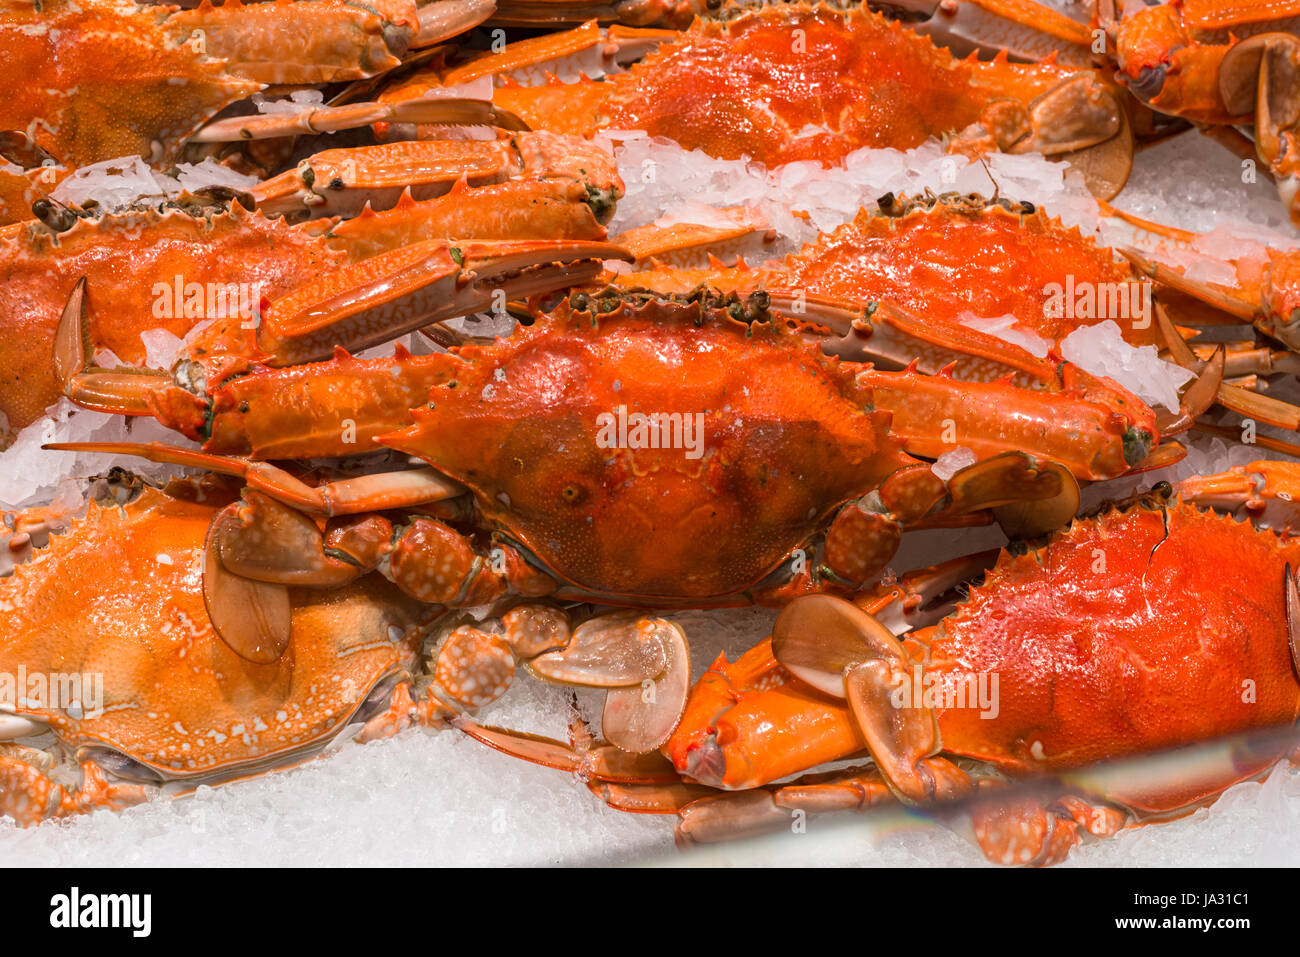 Cooked Blue Swimmer Crabs on sale at Sydney fish market, New South Wales, Australia - Stock Image